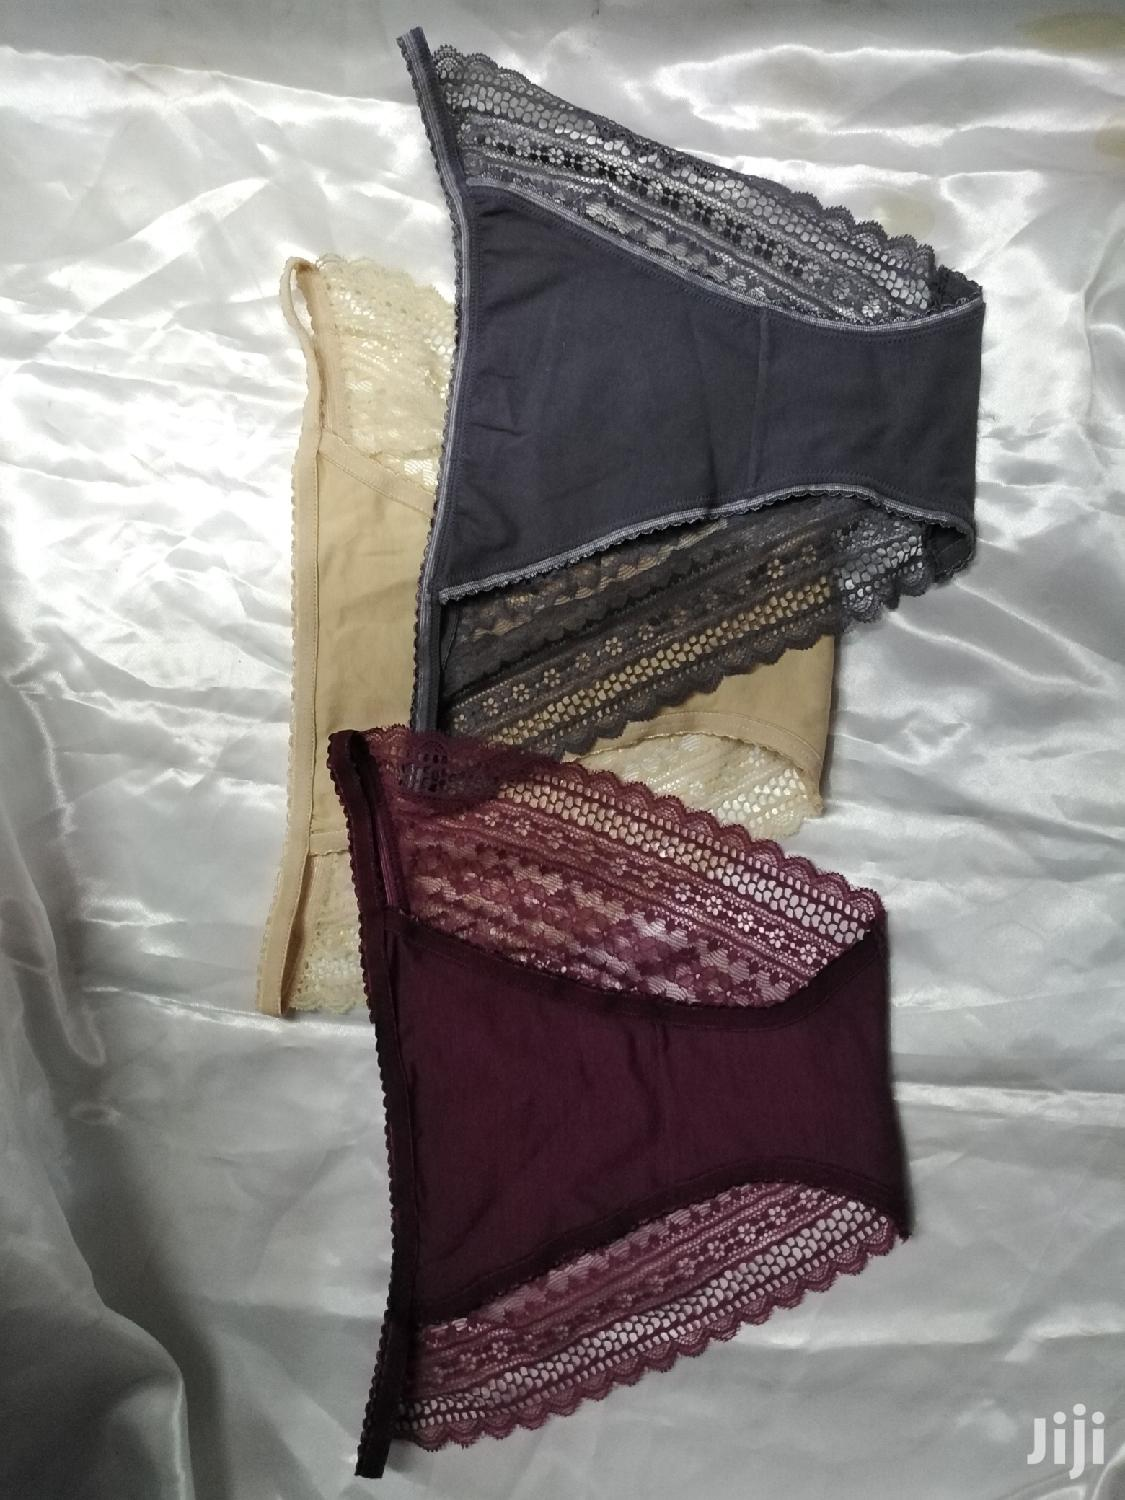 Lovely Looking Lace Panties | Clothing for sale in Nairobi Central, Nairobi, Kenya